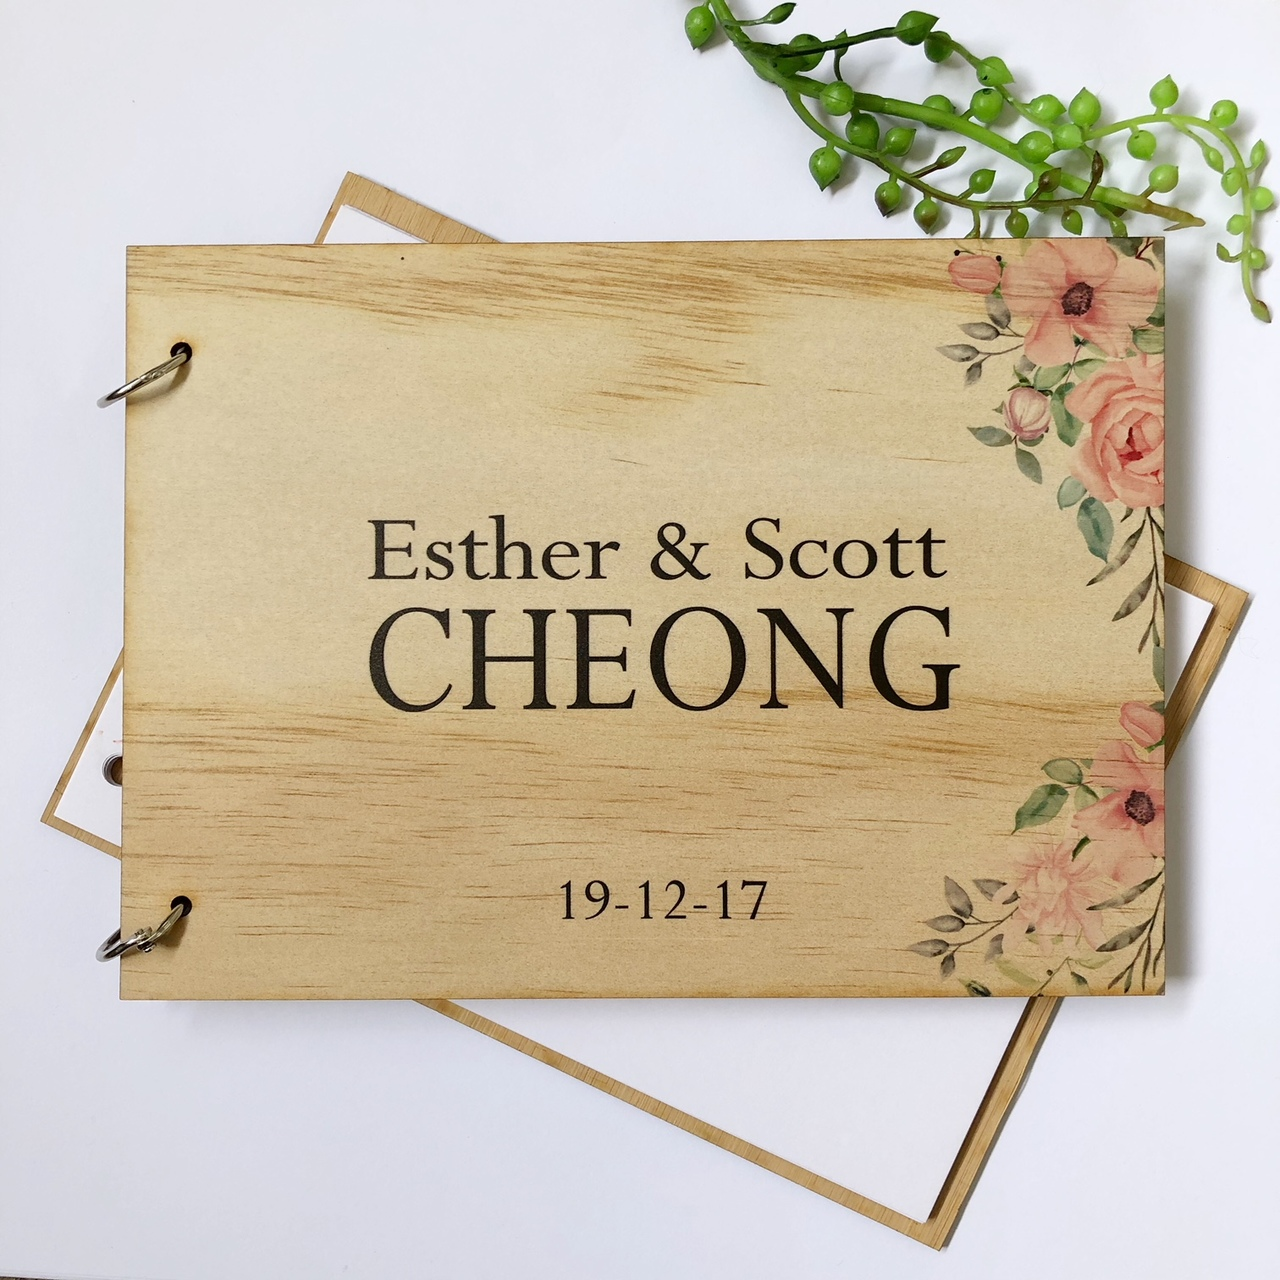 A guest book - personalised with flowers